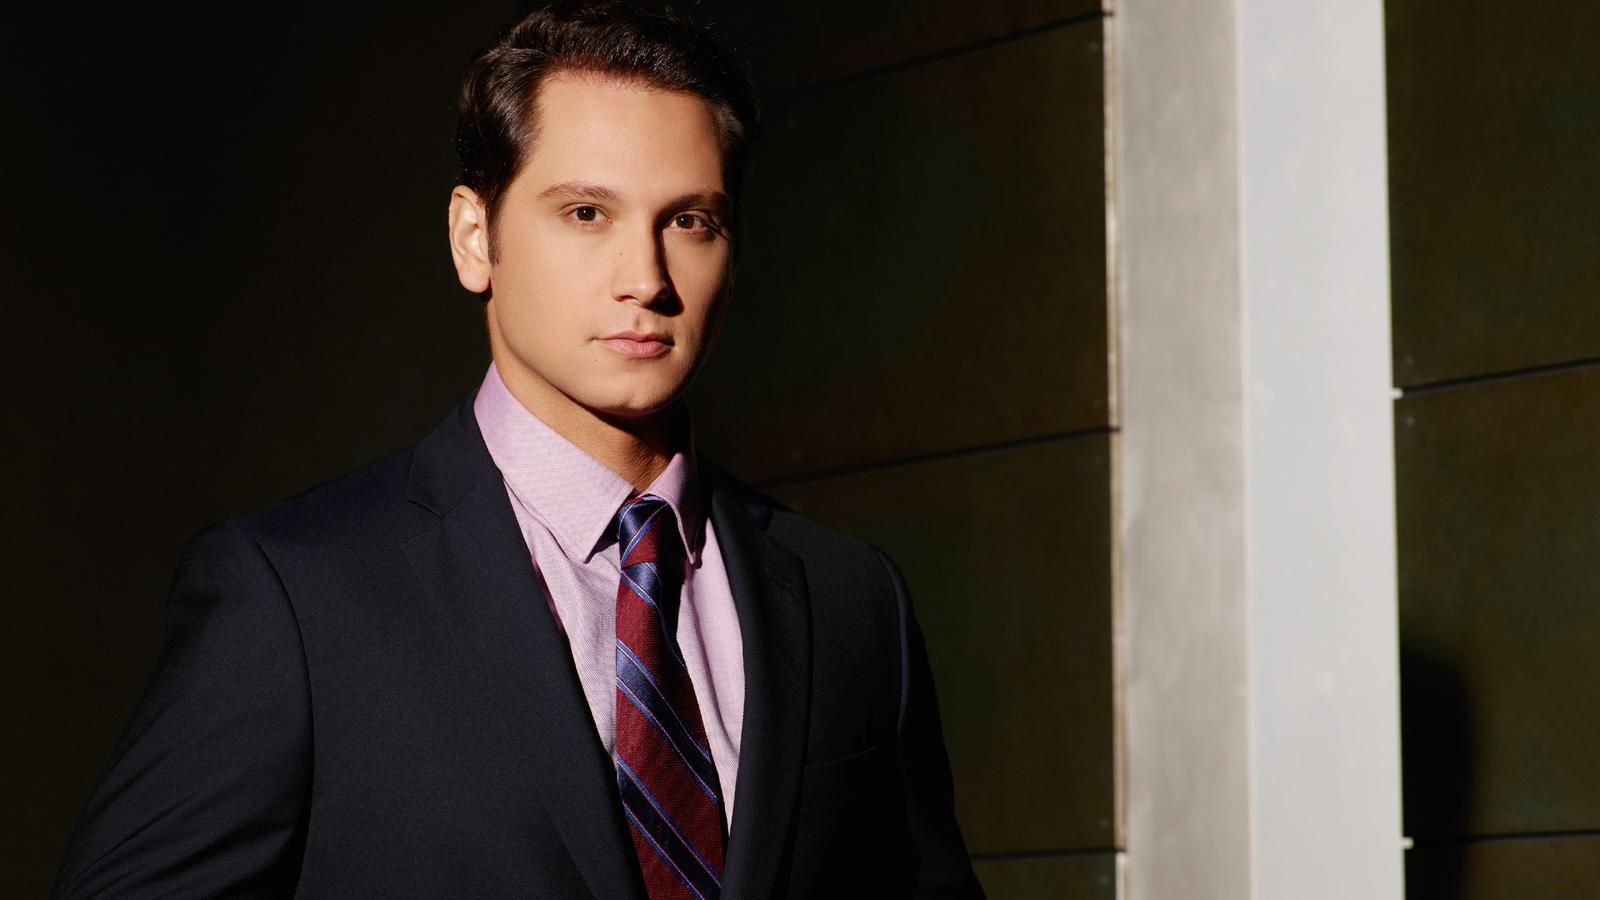 2. Staffel: Asher Millstone (Matt McGorry)